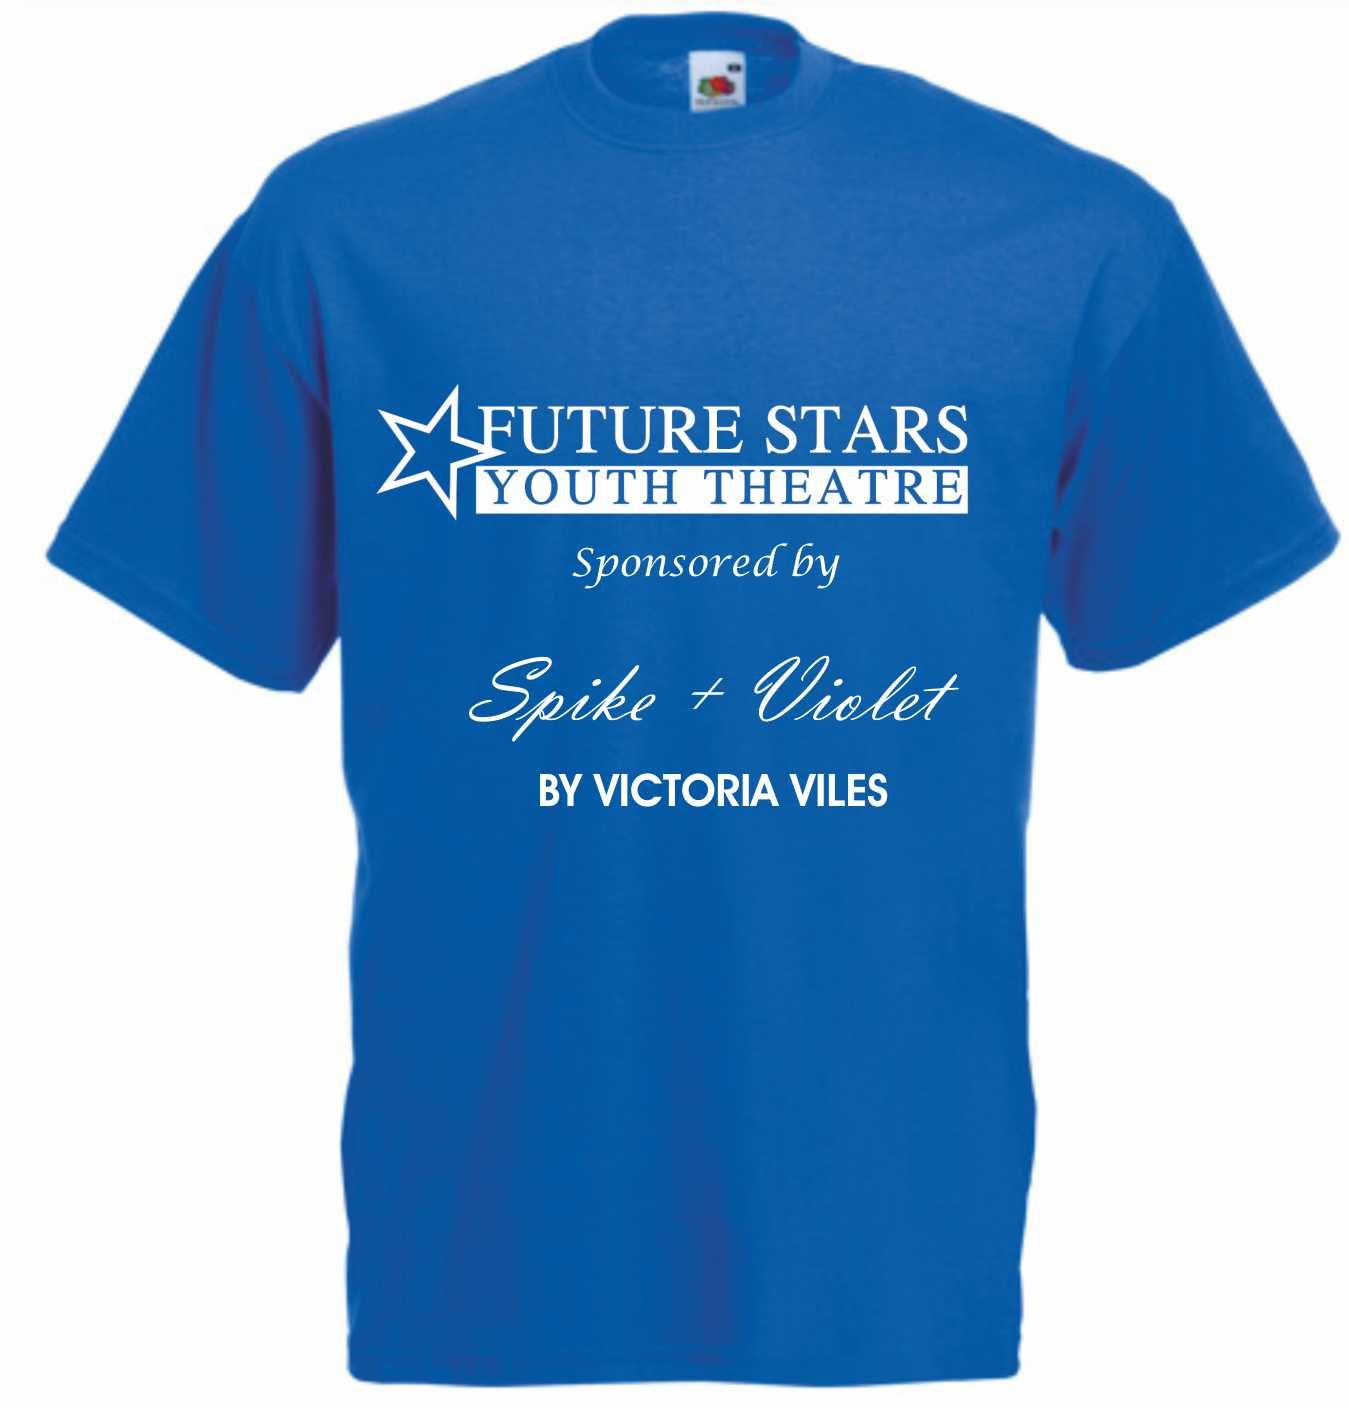 Future Stars Youth Theatre – T-Shirt (Adults)